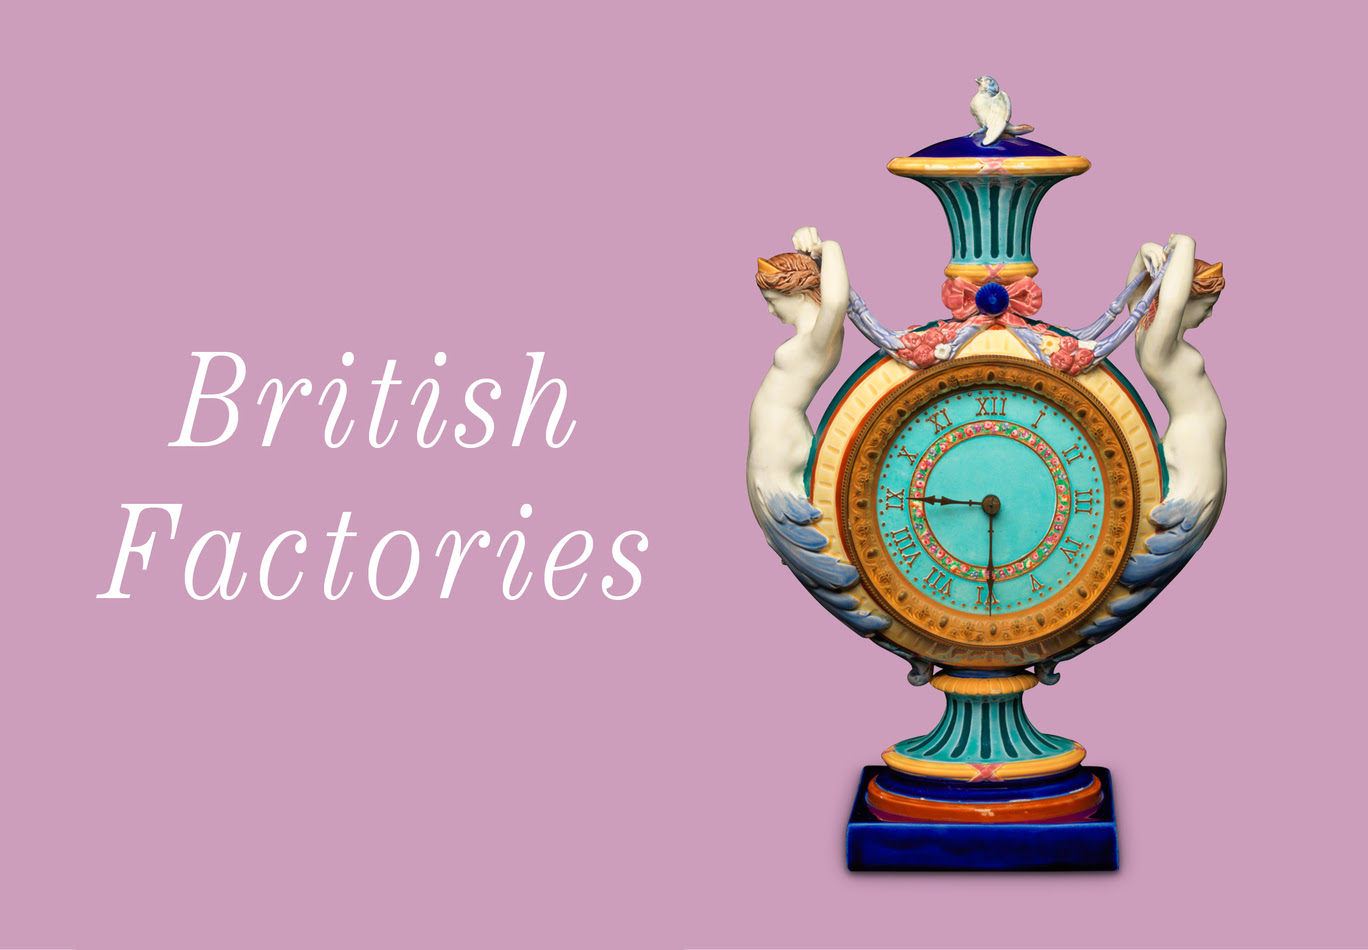 Text: British Factories